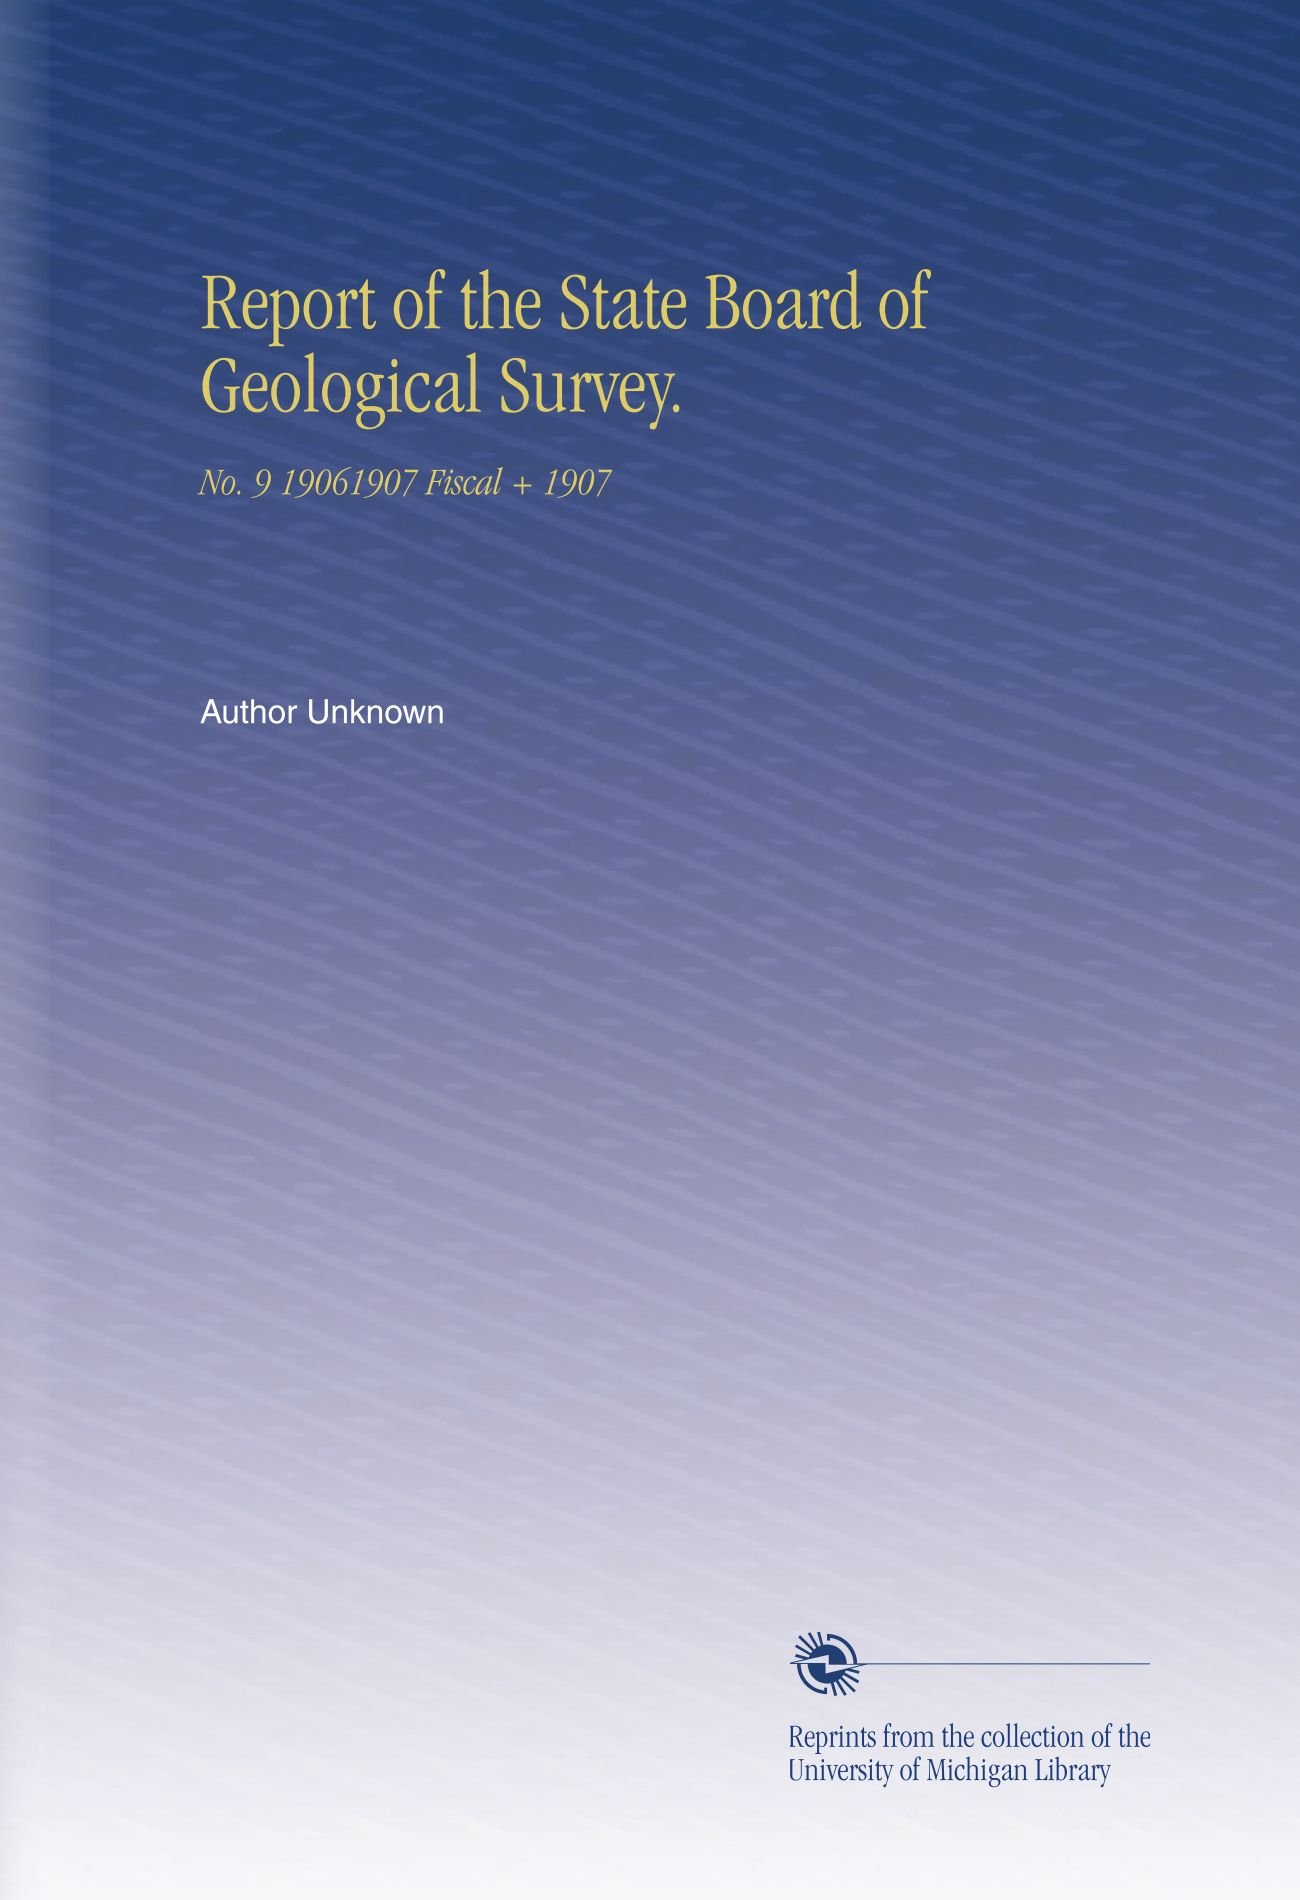 Download Report of the State Board of Geological Survey.: No.  9 19061907 Fiscal + 1907 pdf